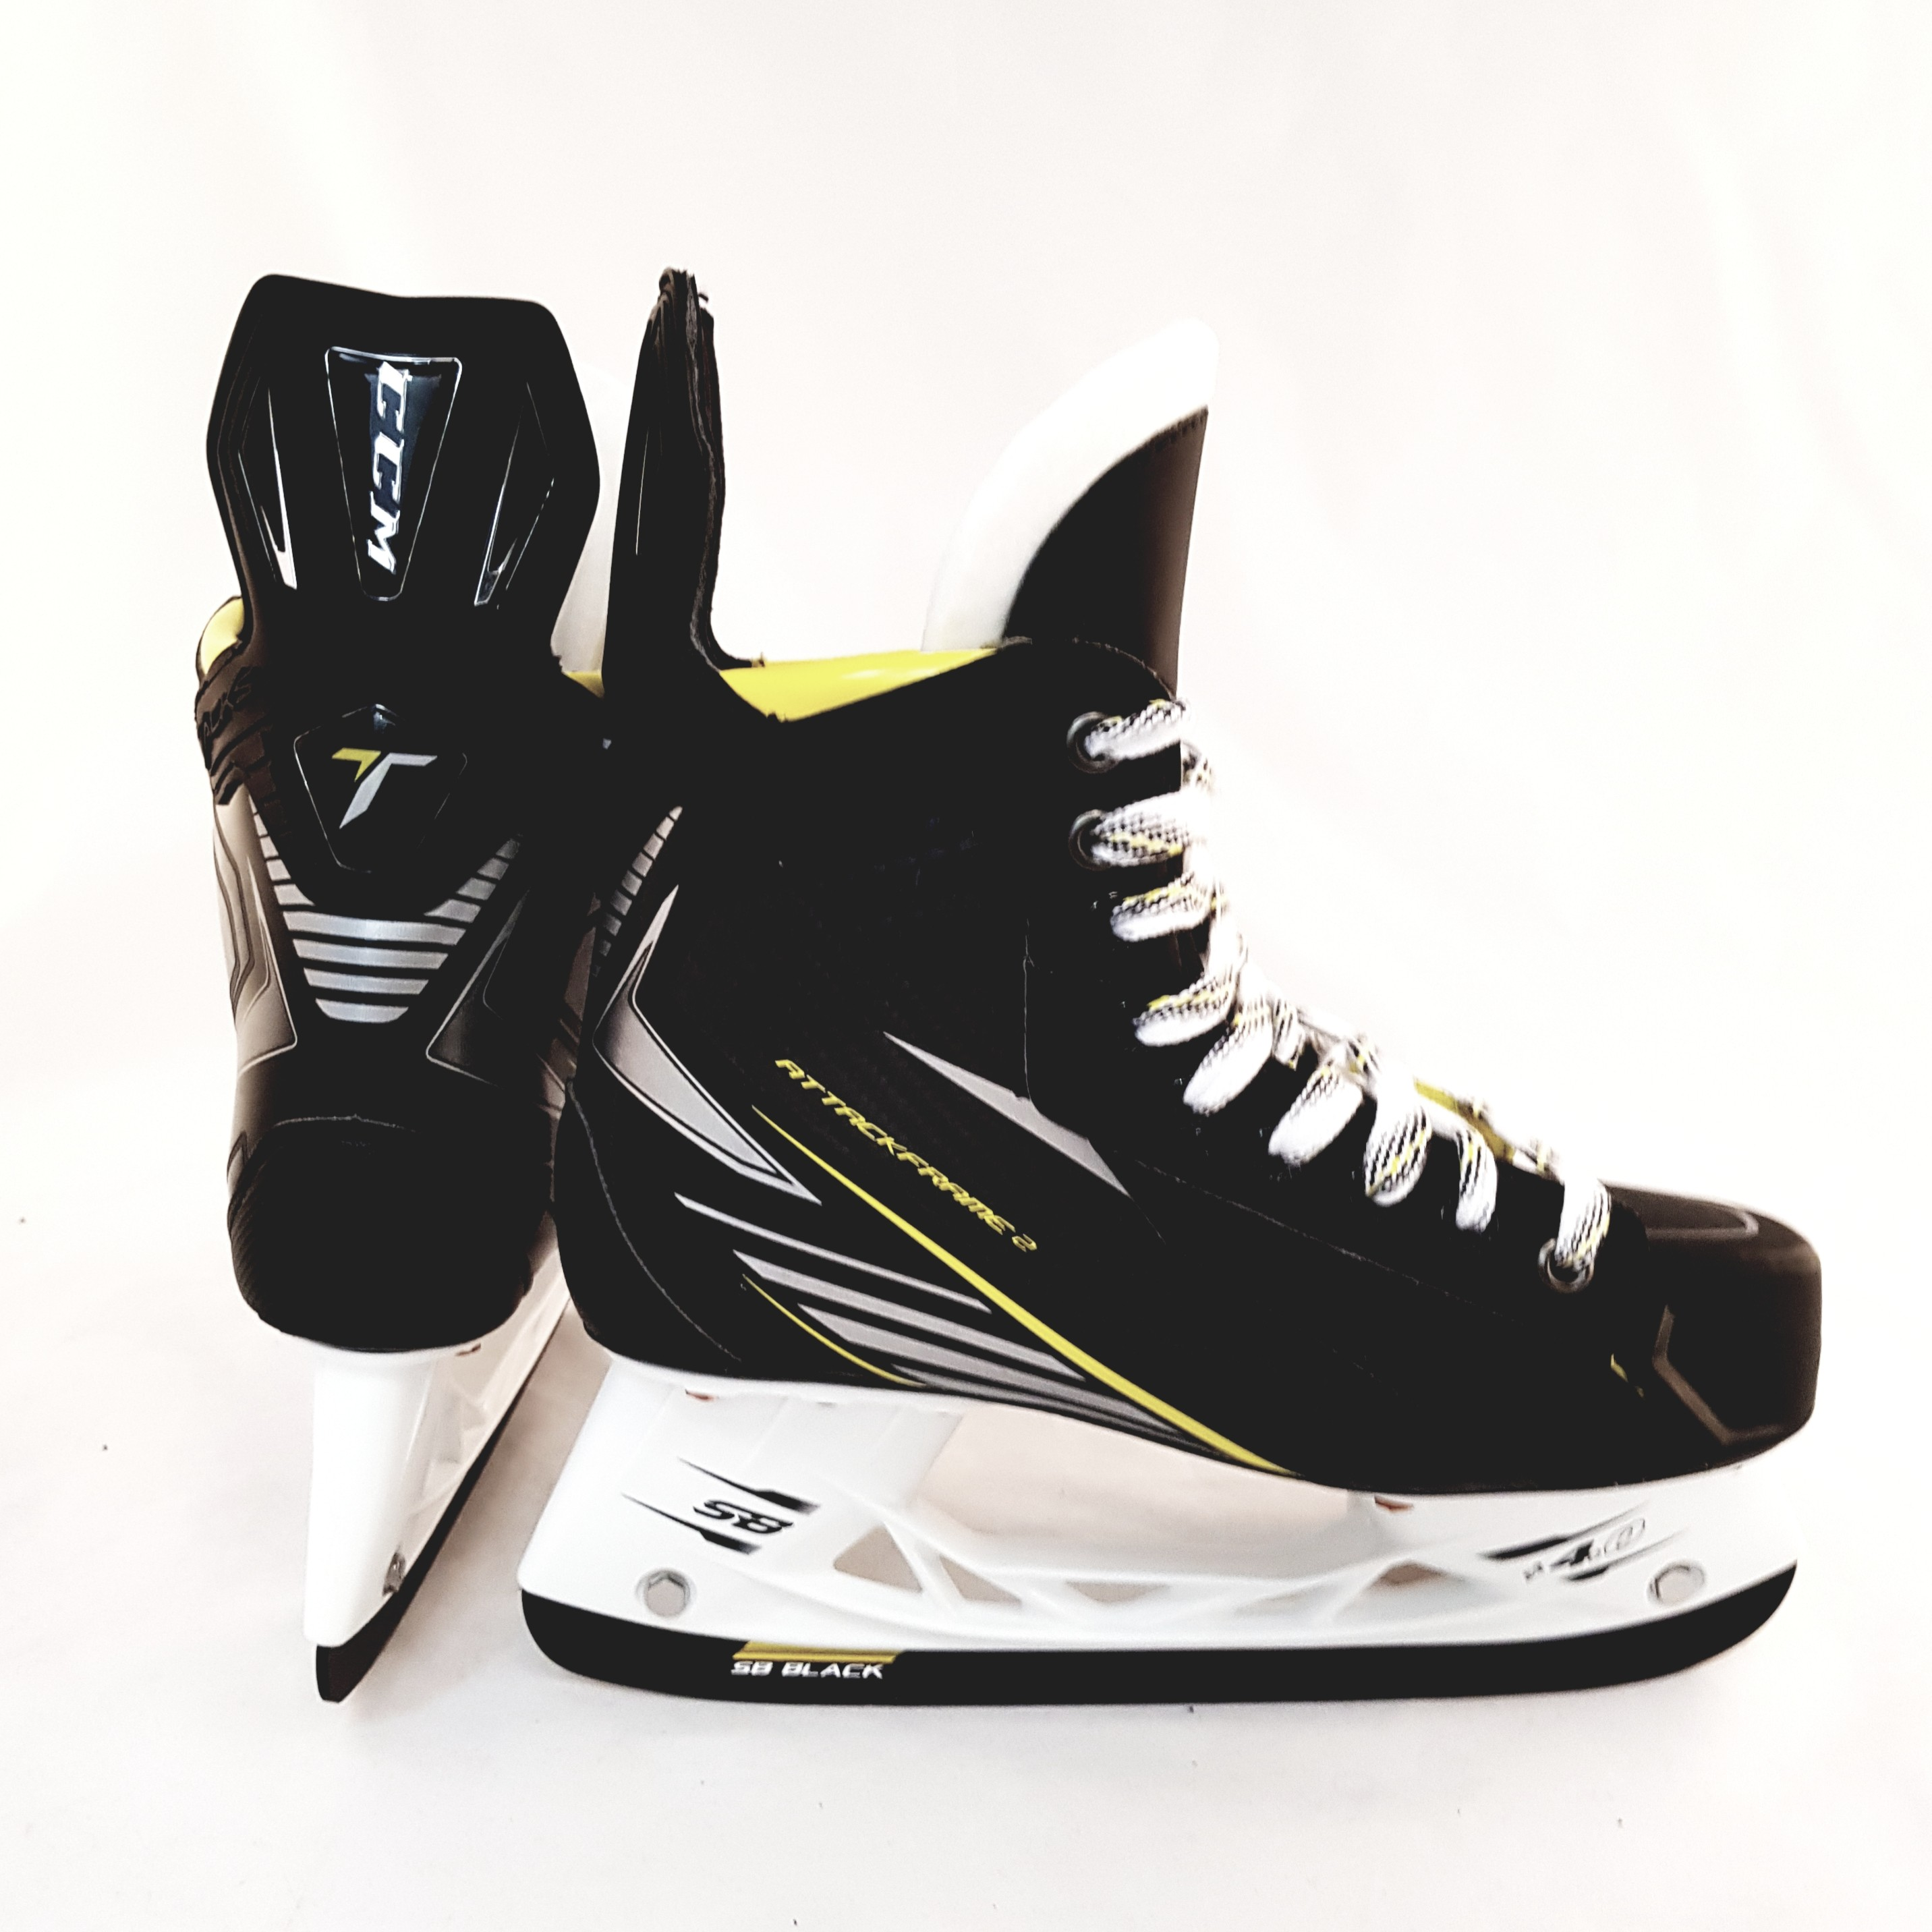 Demo CCM Ultra Tacks Senior Ice Hockey Skates